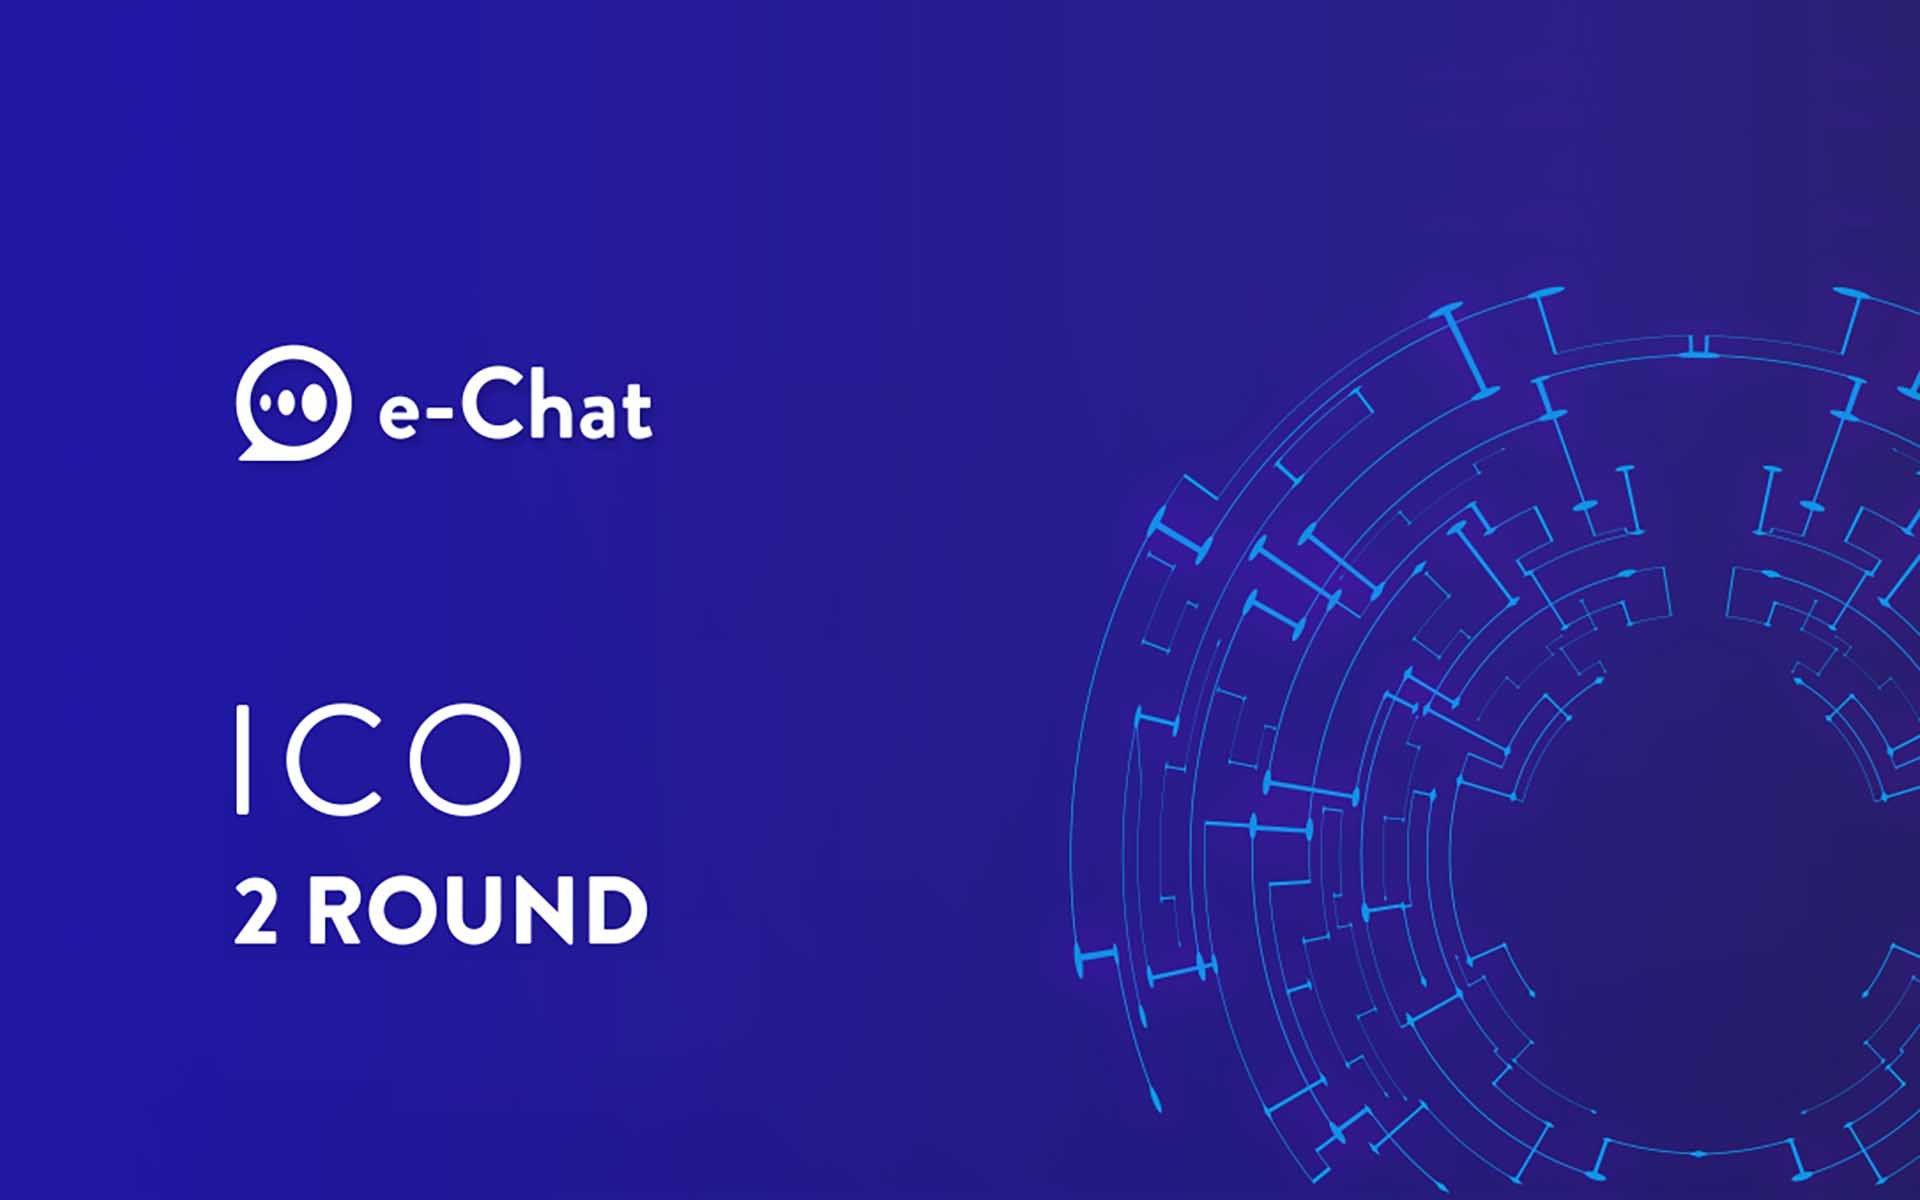 The Second Round of e-Chat ICO, First Decentralized Messenger, Ends in 10 Days!